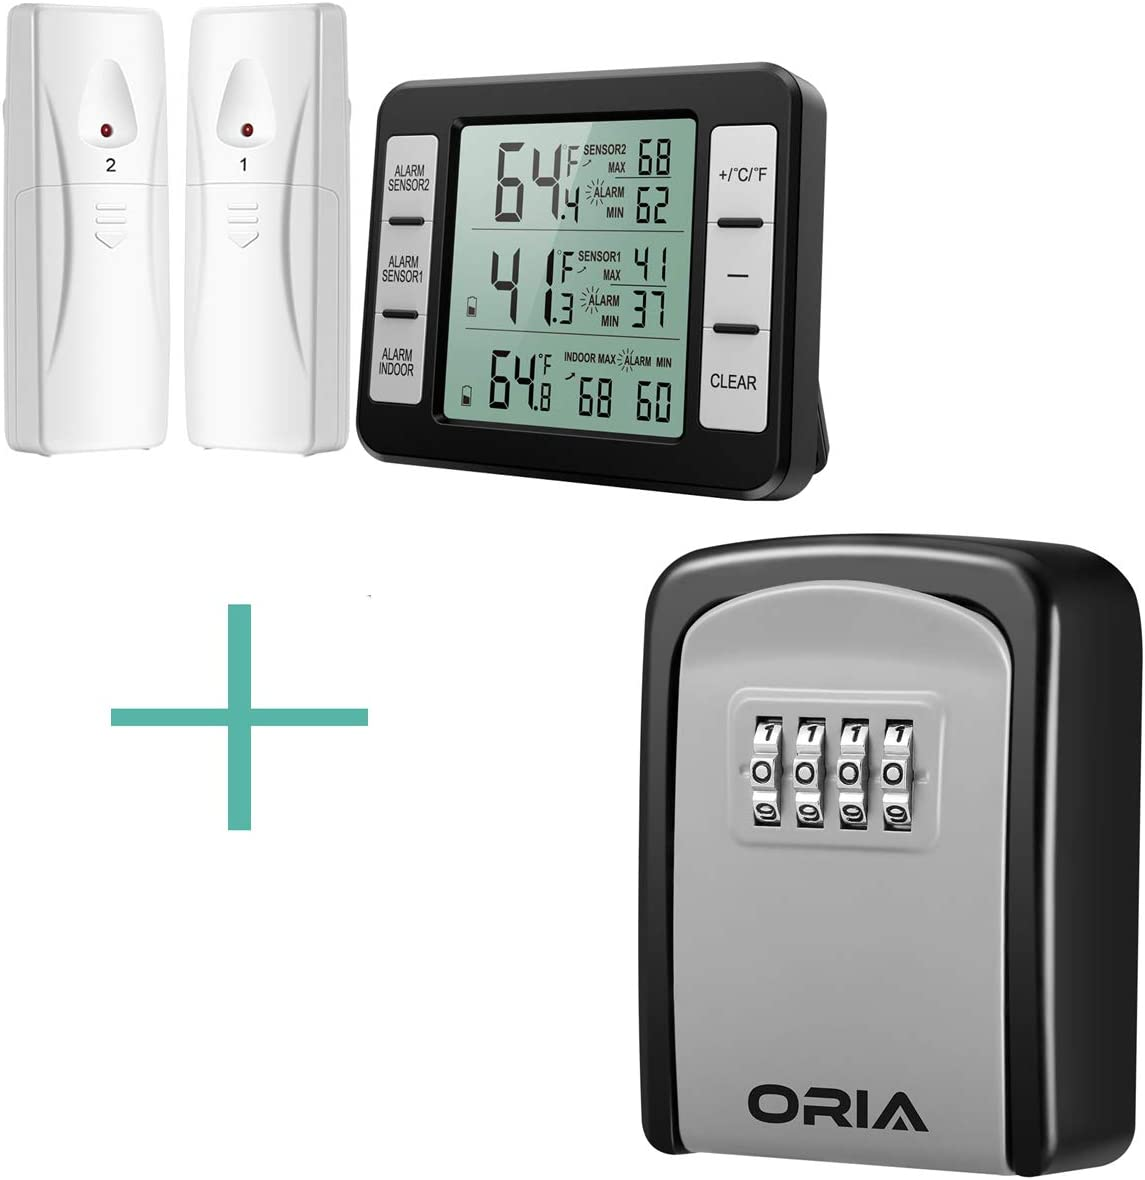 ORIA Refrigerator Thermometer and Key Lock Box